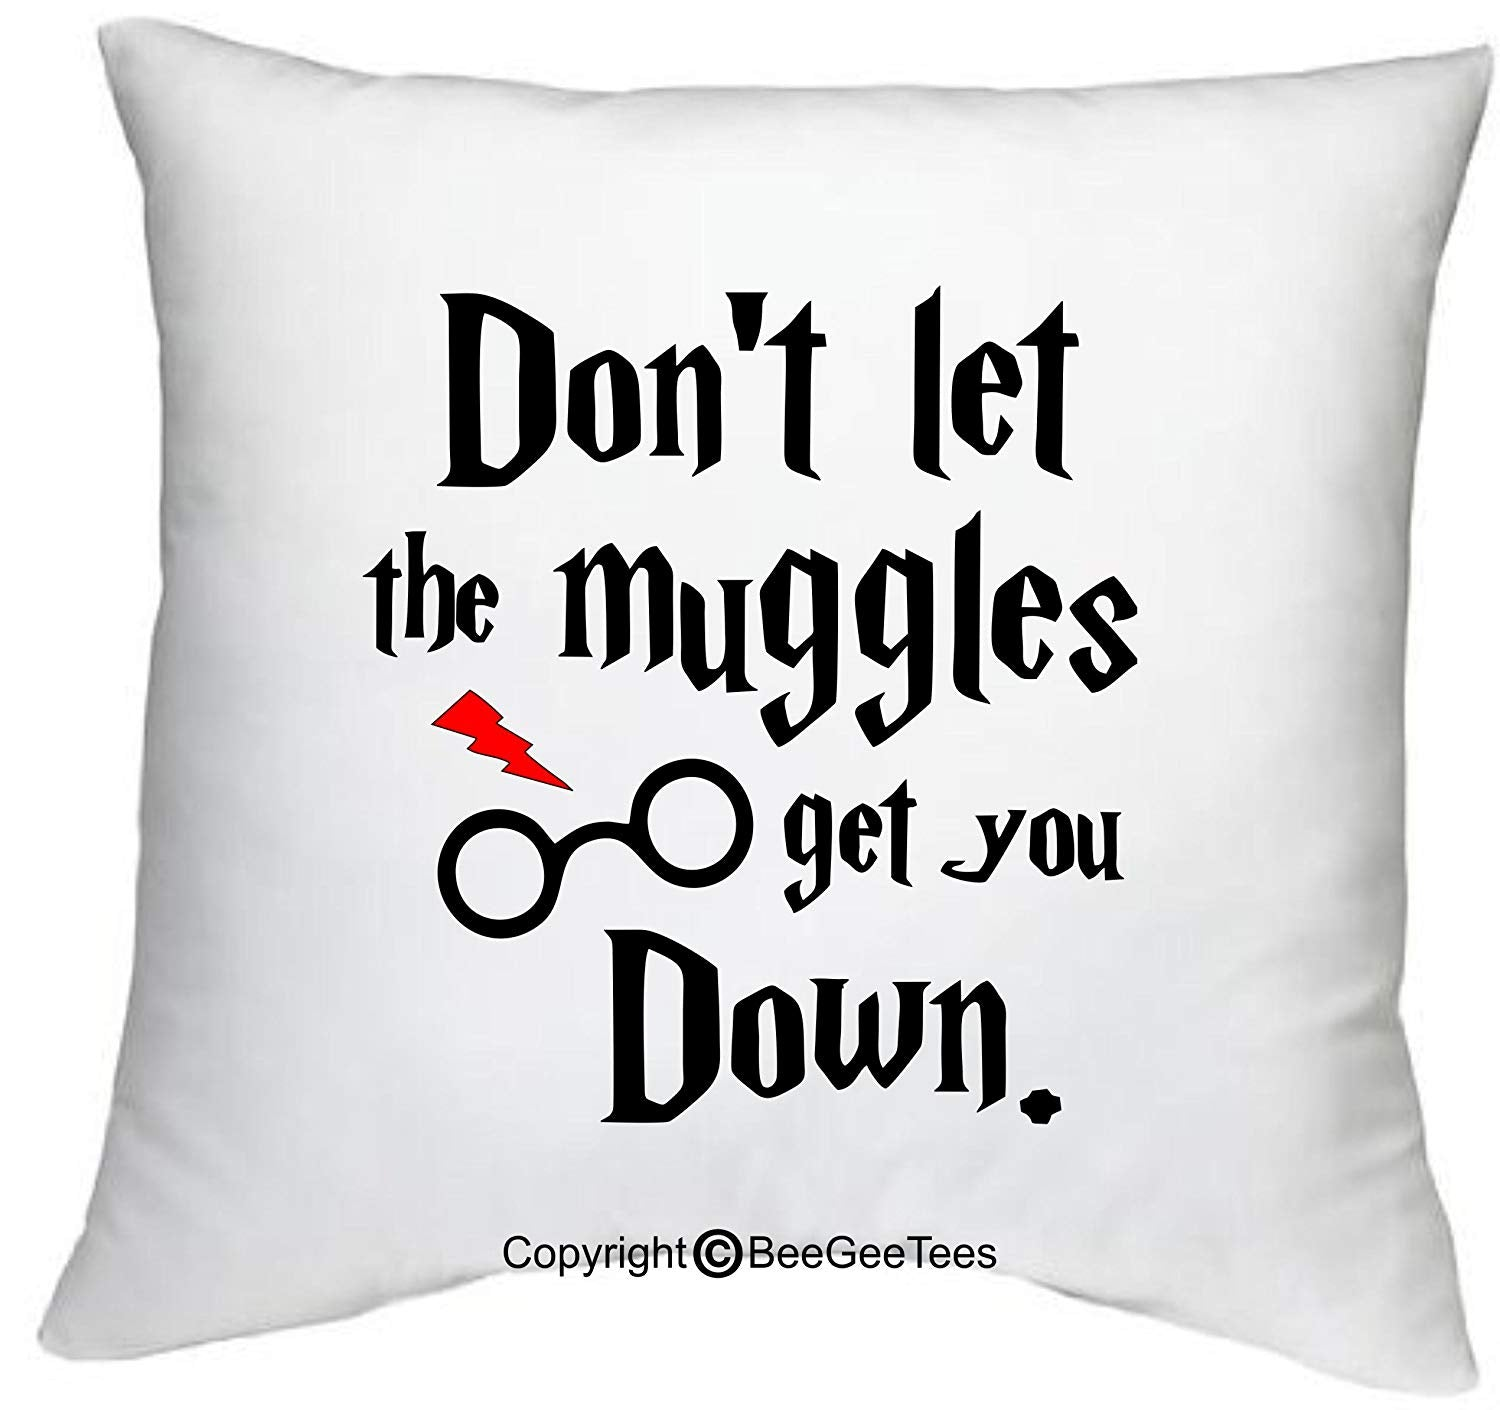 "Don't Let The Muggles Get You Down Funny Harry Potter Inspired 18"" x 18"" Zippered Pillow Cover by BeeGeeTees"